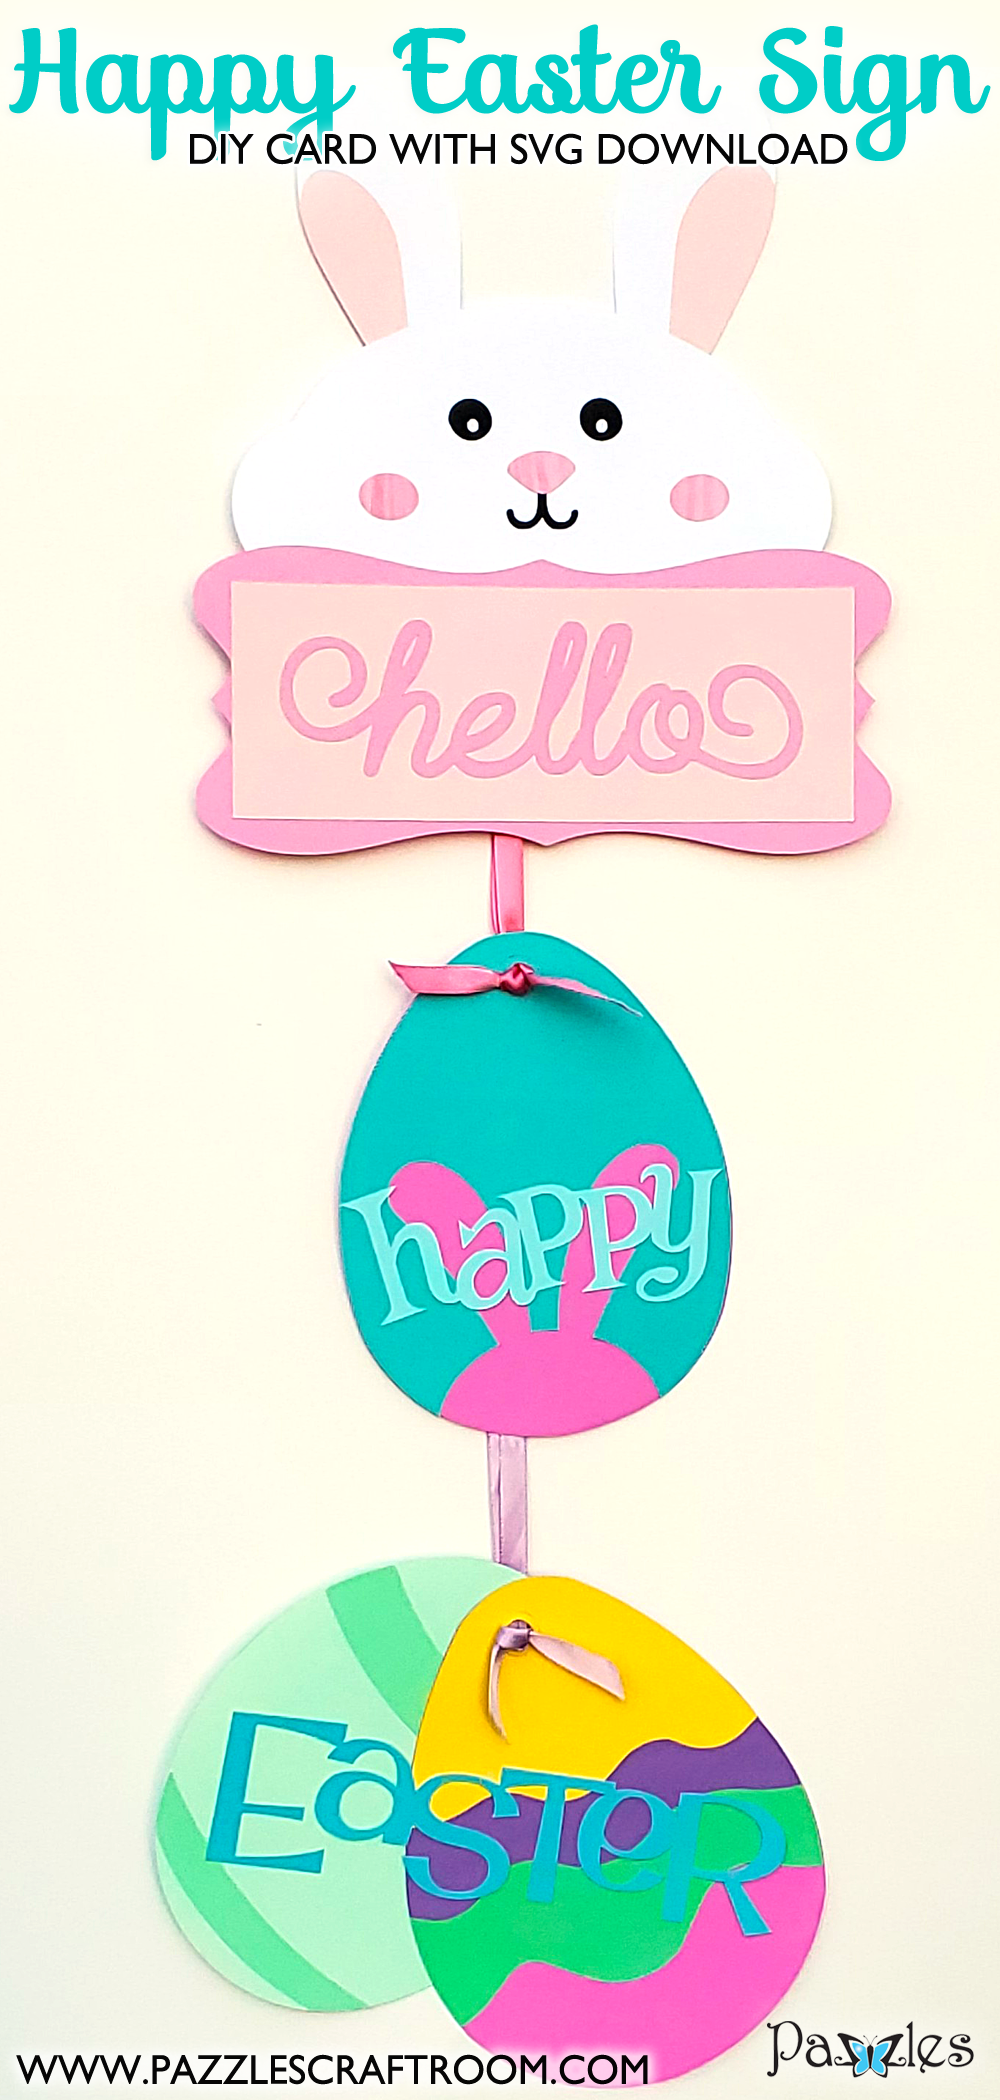 Pazzles DIY Happy Easter Sign with instant SVG download.  Instant SVG download compatible with all major electronic cutters including Pazzles Inspiration, Cricut, and Silhouette Cameo. Design by Renee Smart.